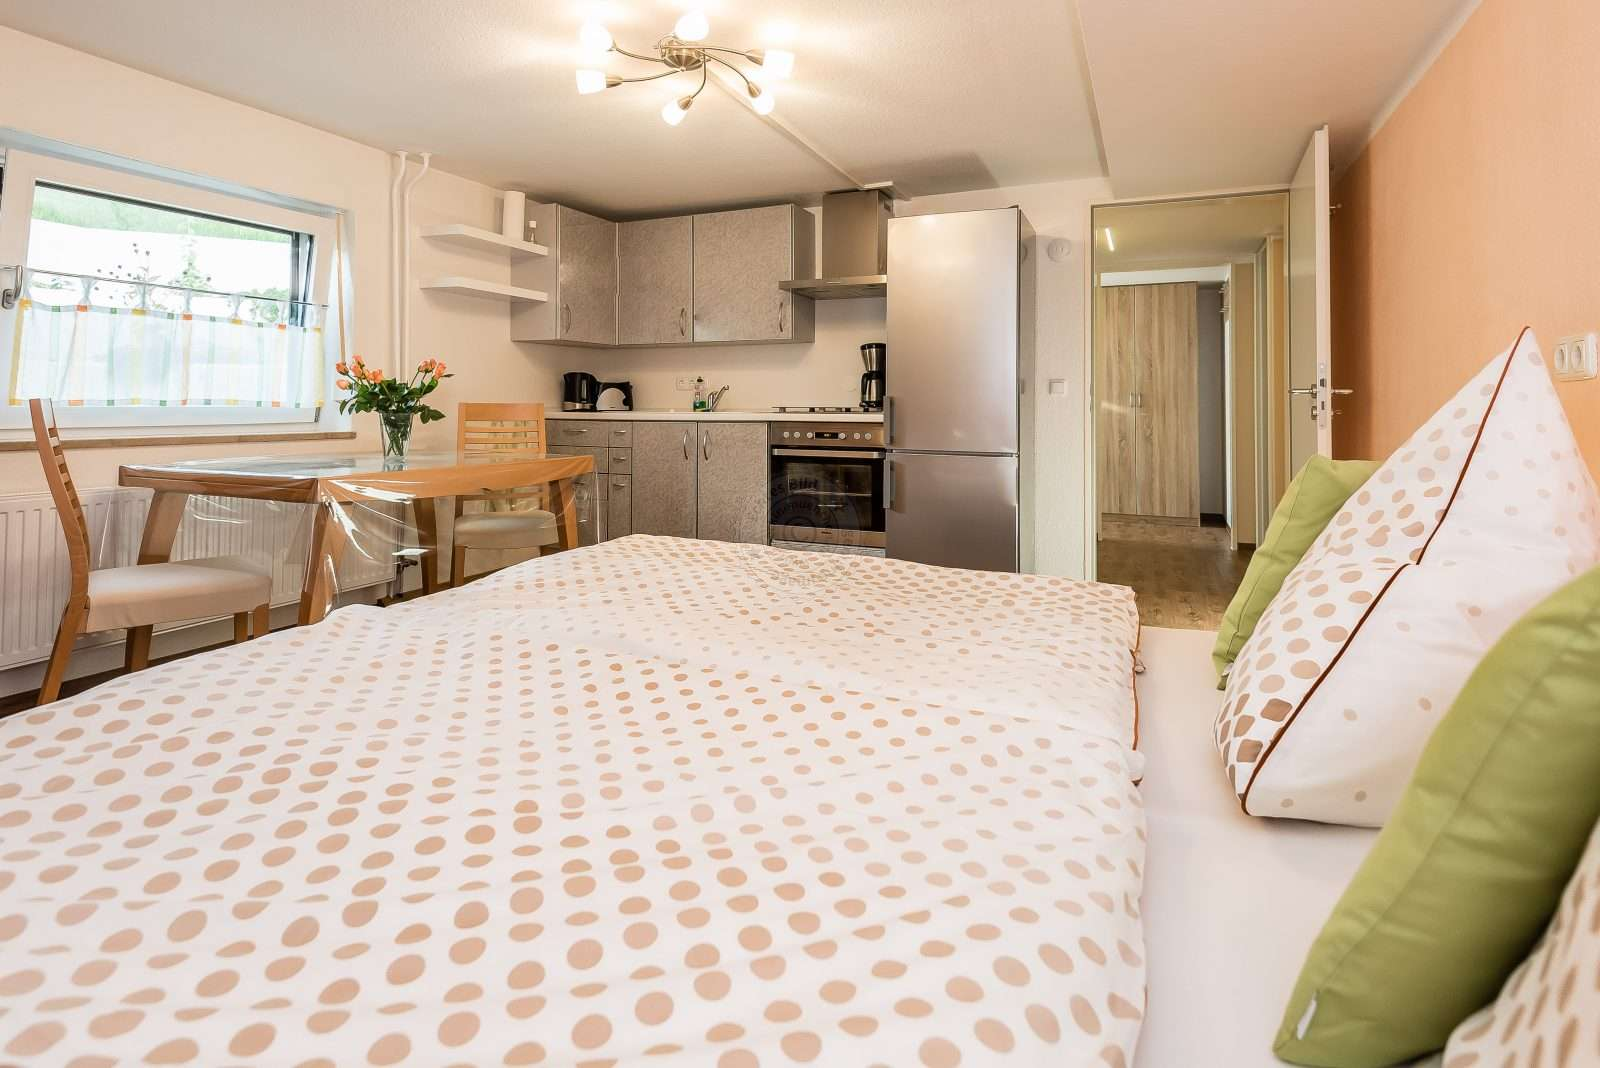 Living / bedroom with double bed and kitchenette